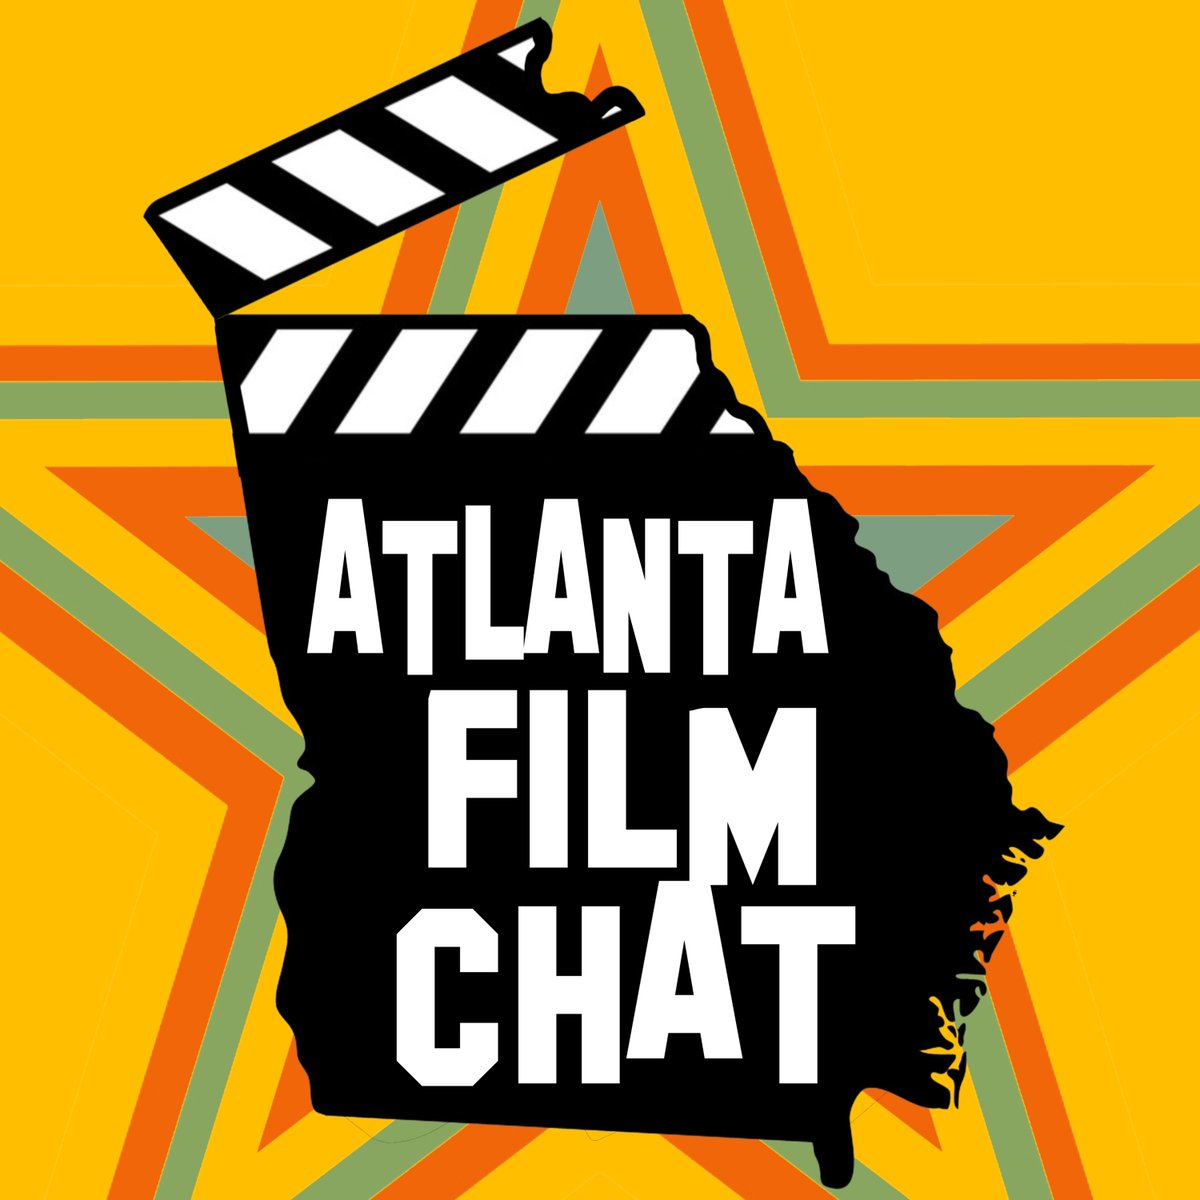 Grab all our episodes at our website!  #filmmaking #writing #producing #directing #acting #indiefilm #indie #supportindiefilm #atlanta #georgia #movies